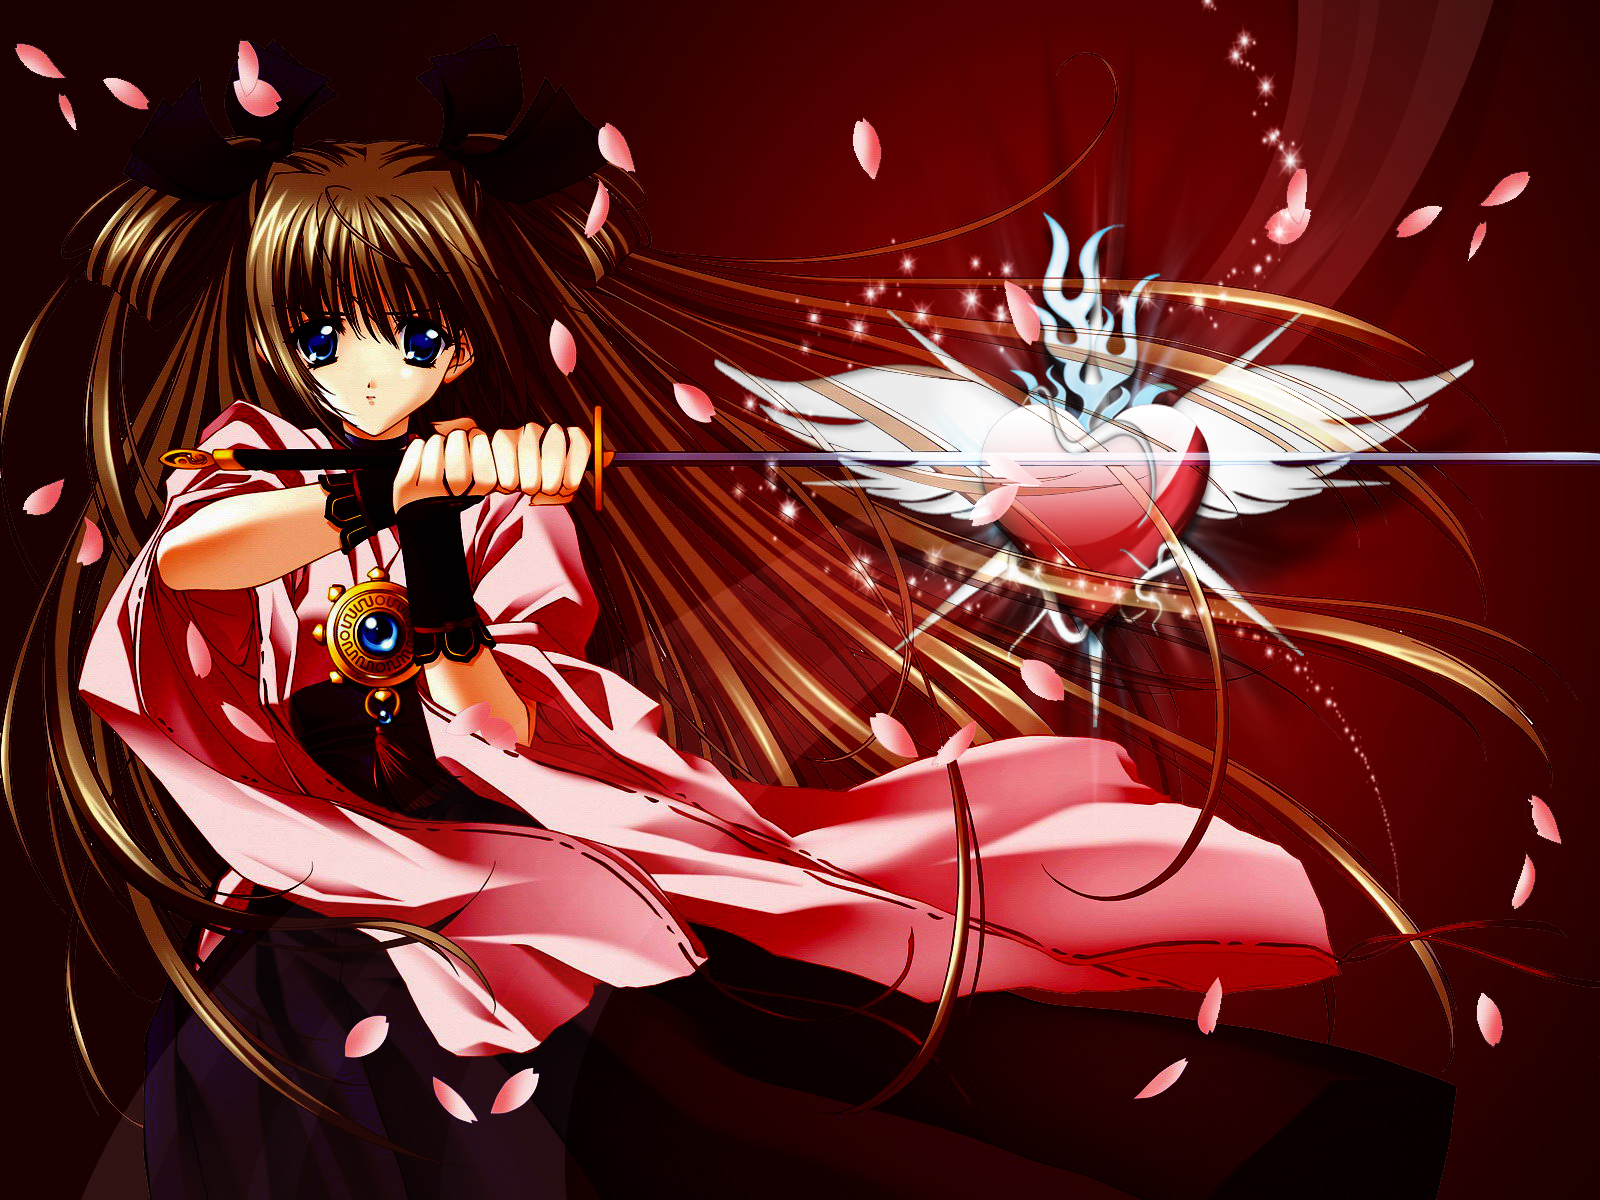 Artist Action Anime wallpapers by various designers 1600x1200